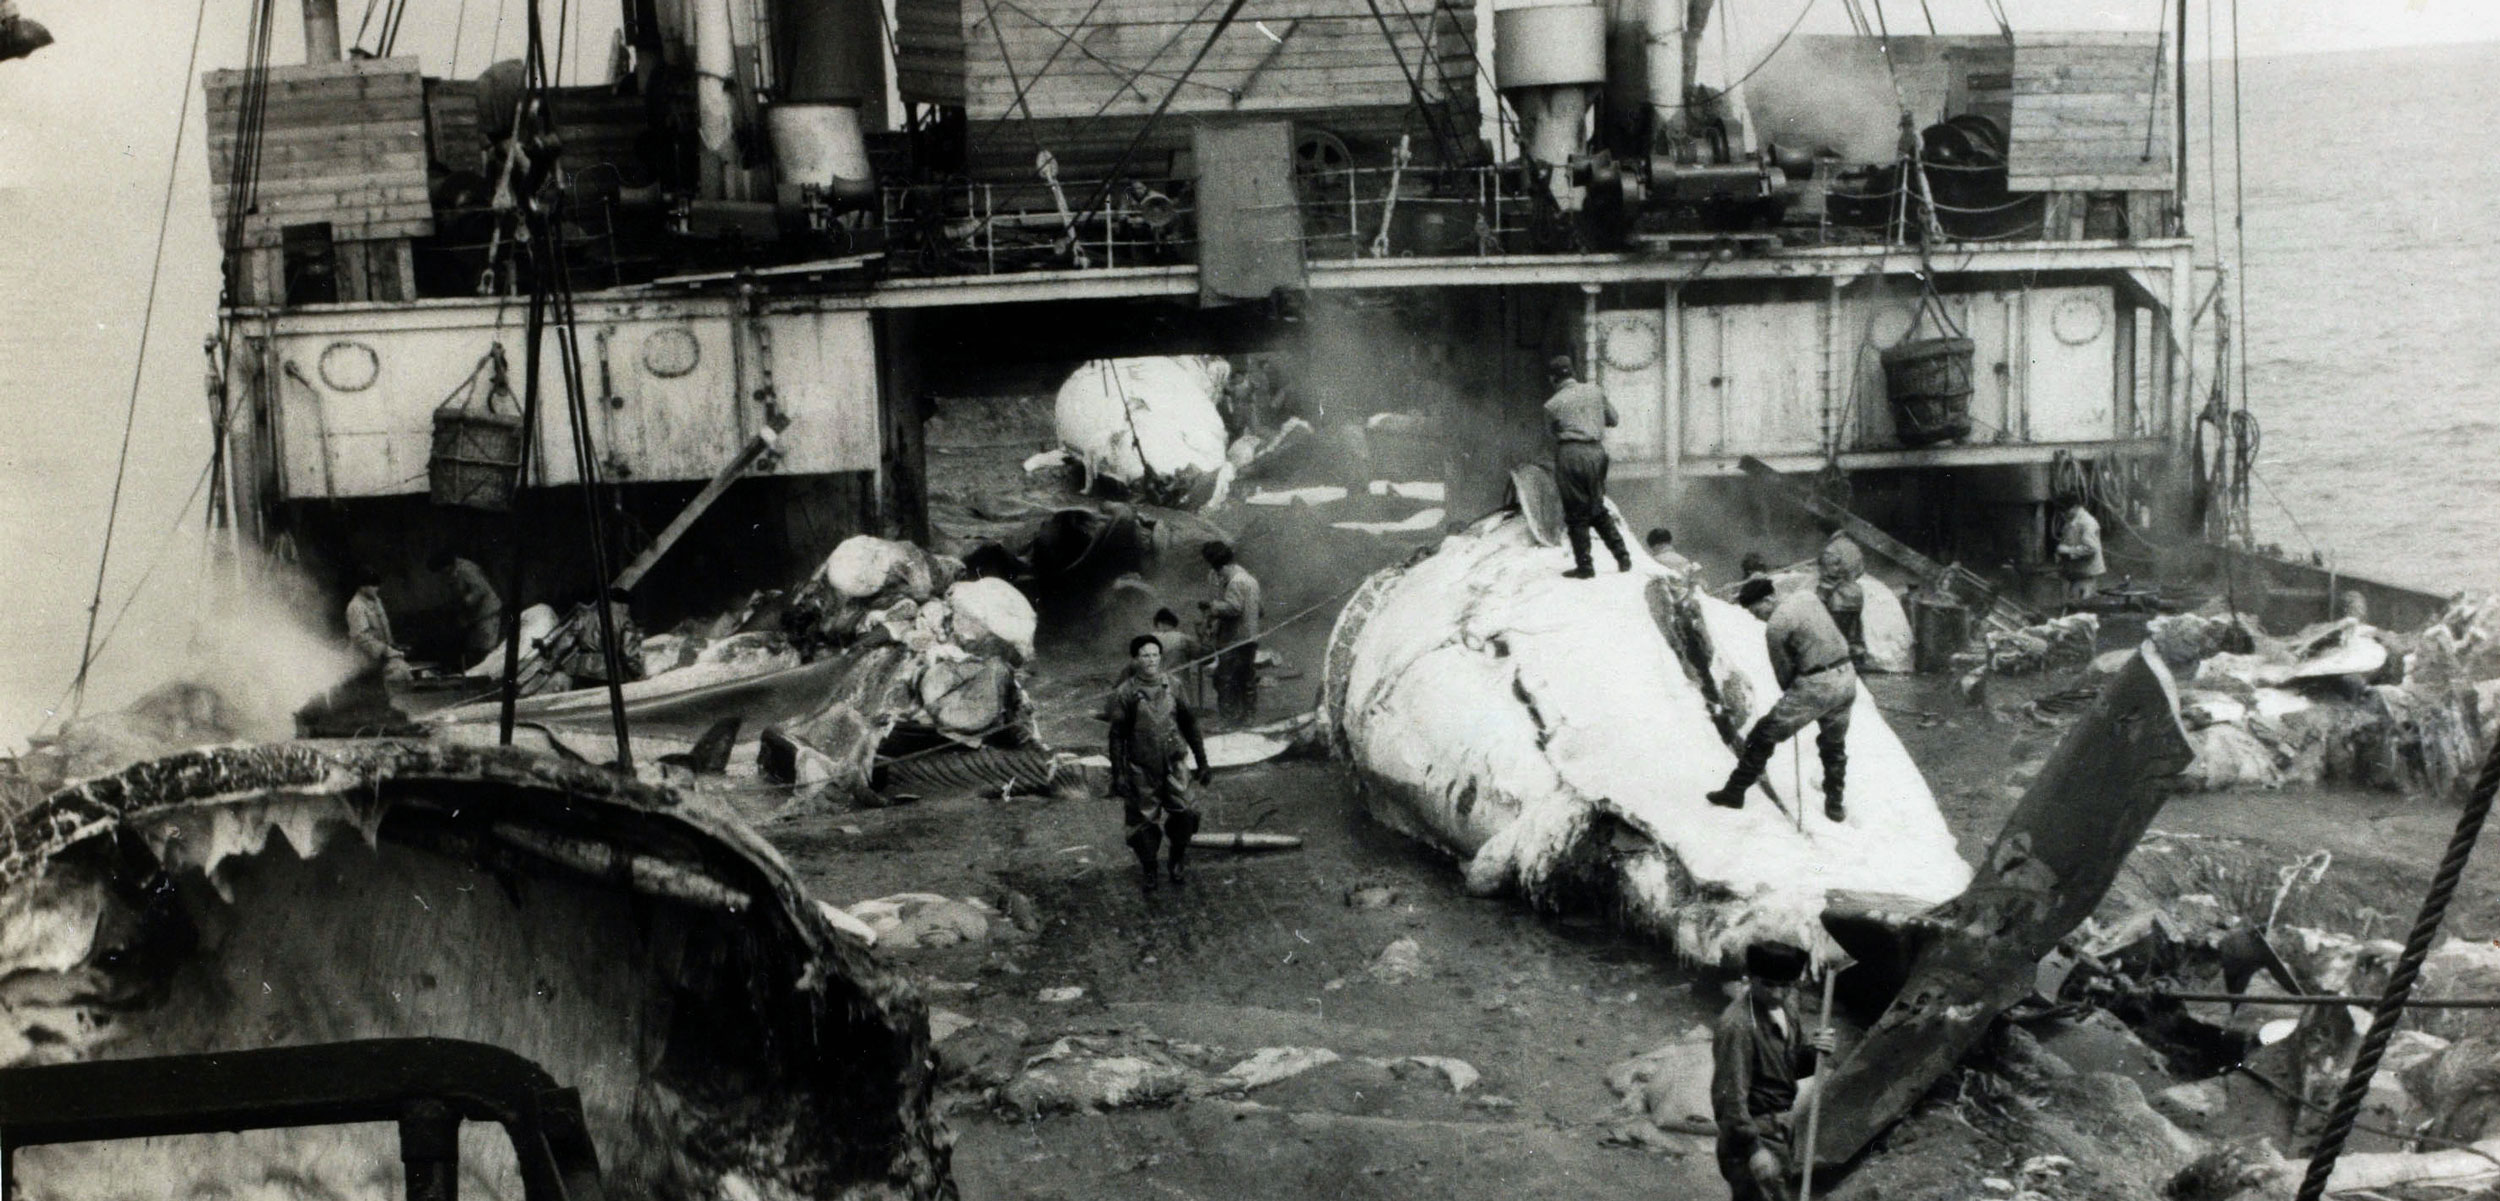 Whales being butchered on the deck of a Soviet whaling ship